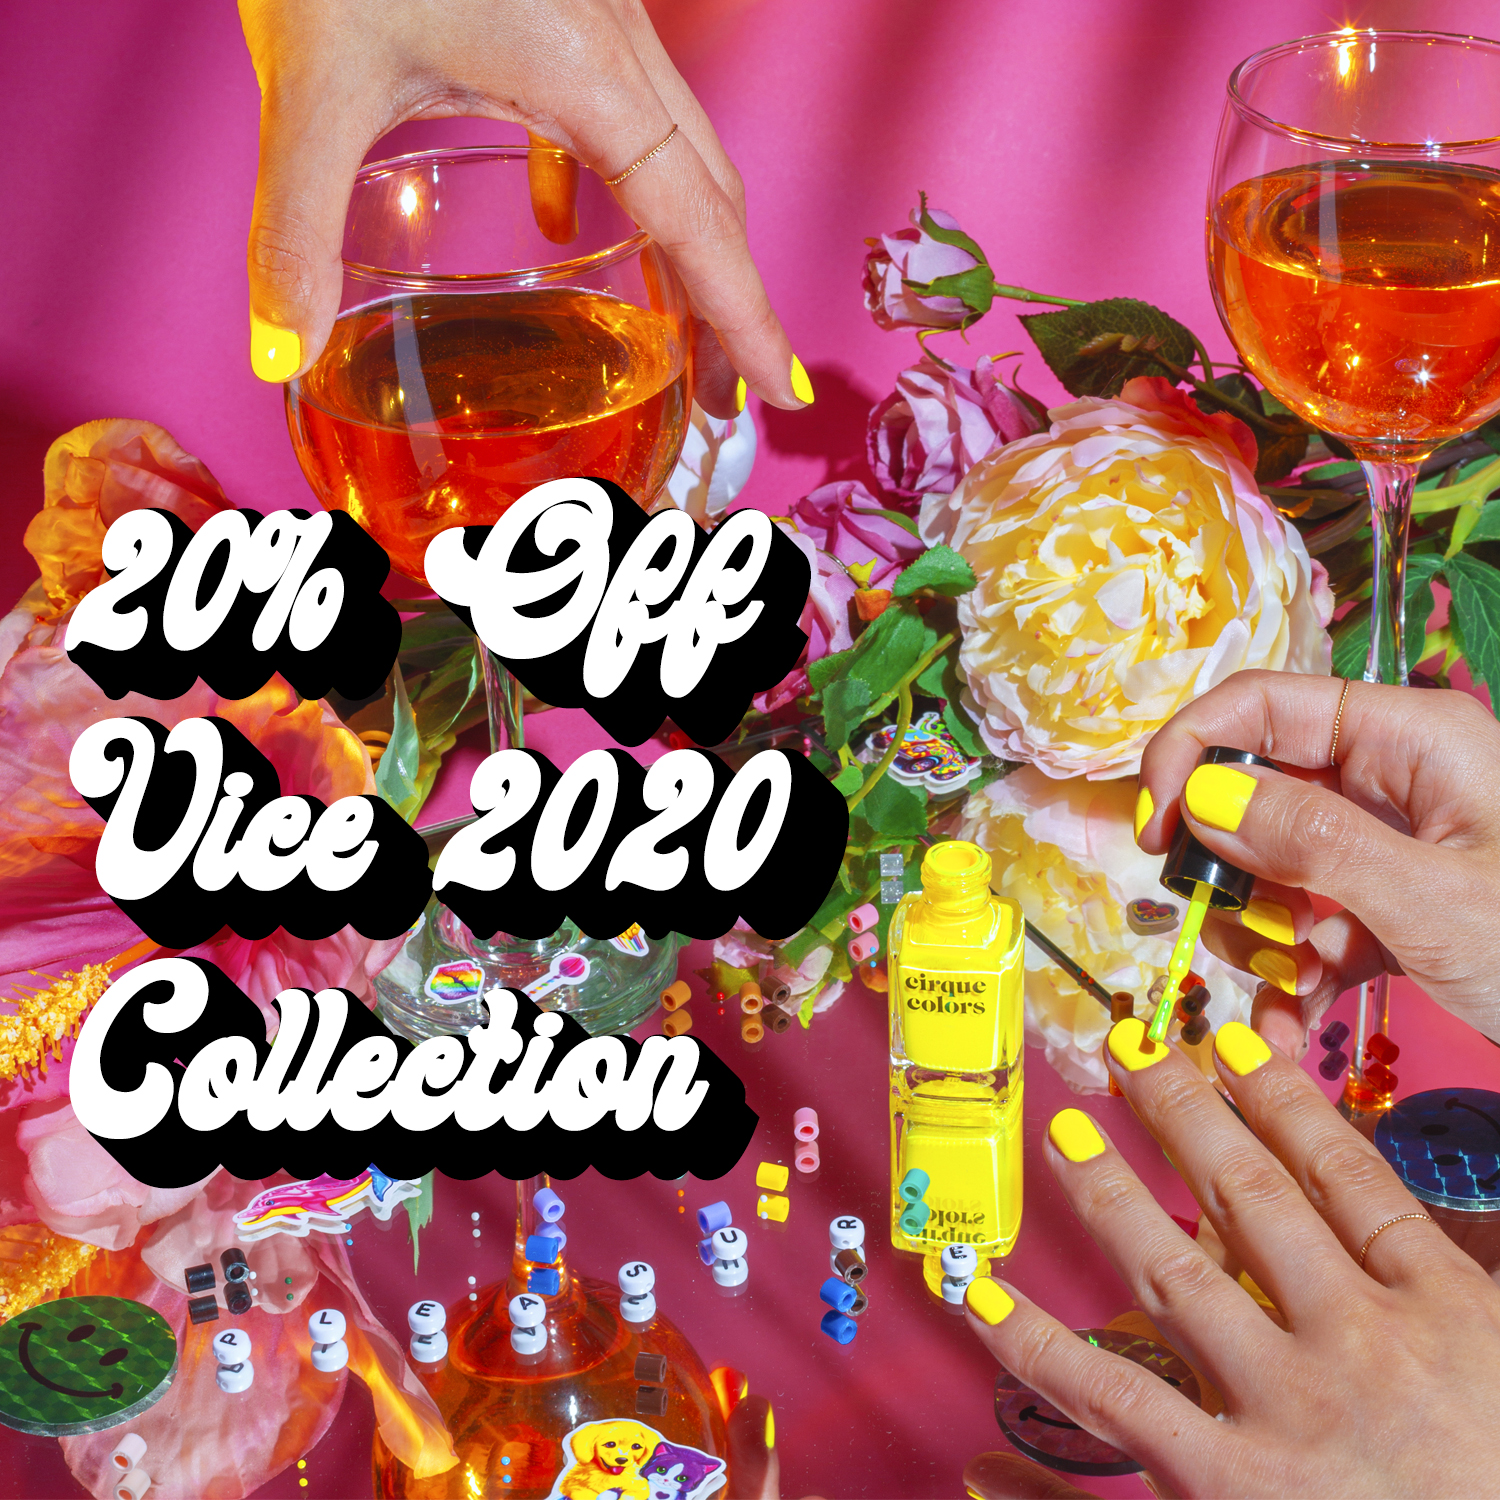 Vice 2020 Collection Clearance